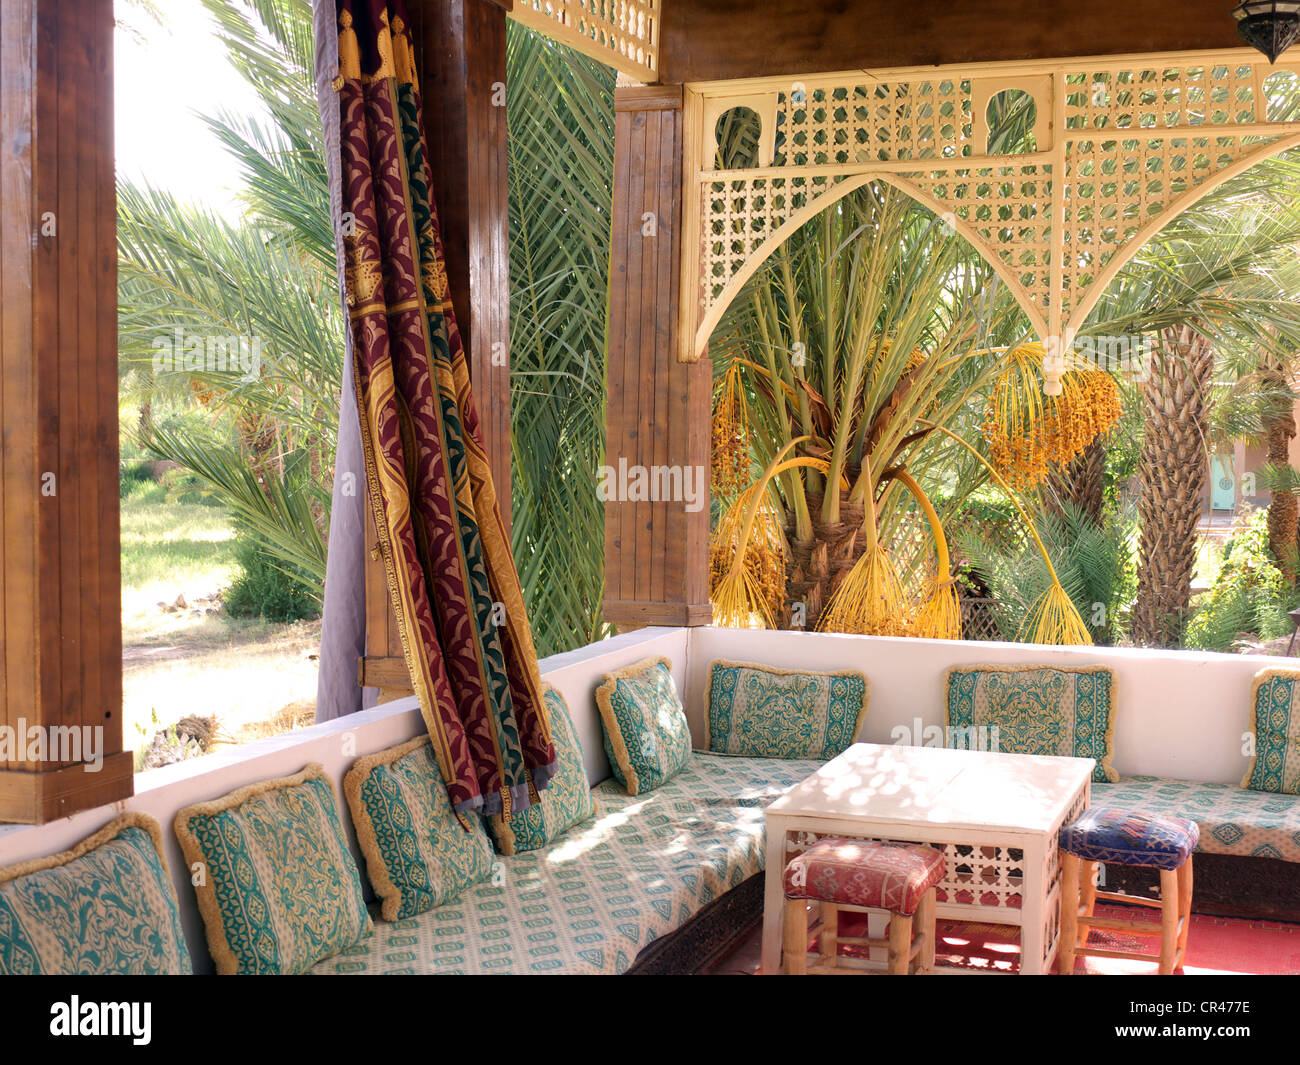 Uncategorized Morrocan Decor traditional moroccan decor in a riad kasbah style converted hotel agdz draa valley morocco north africa africa